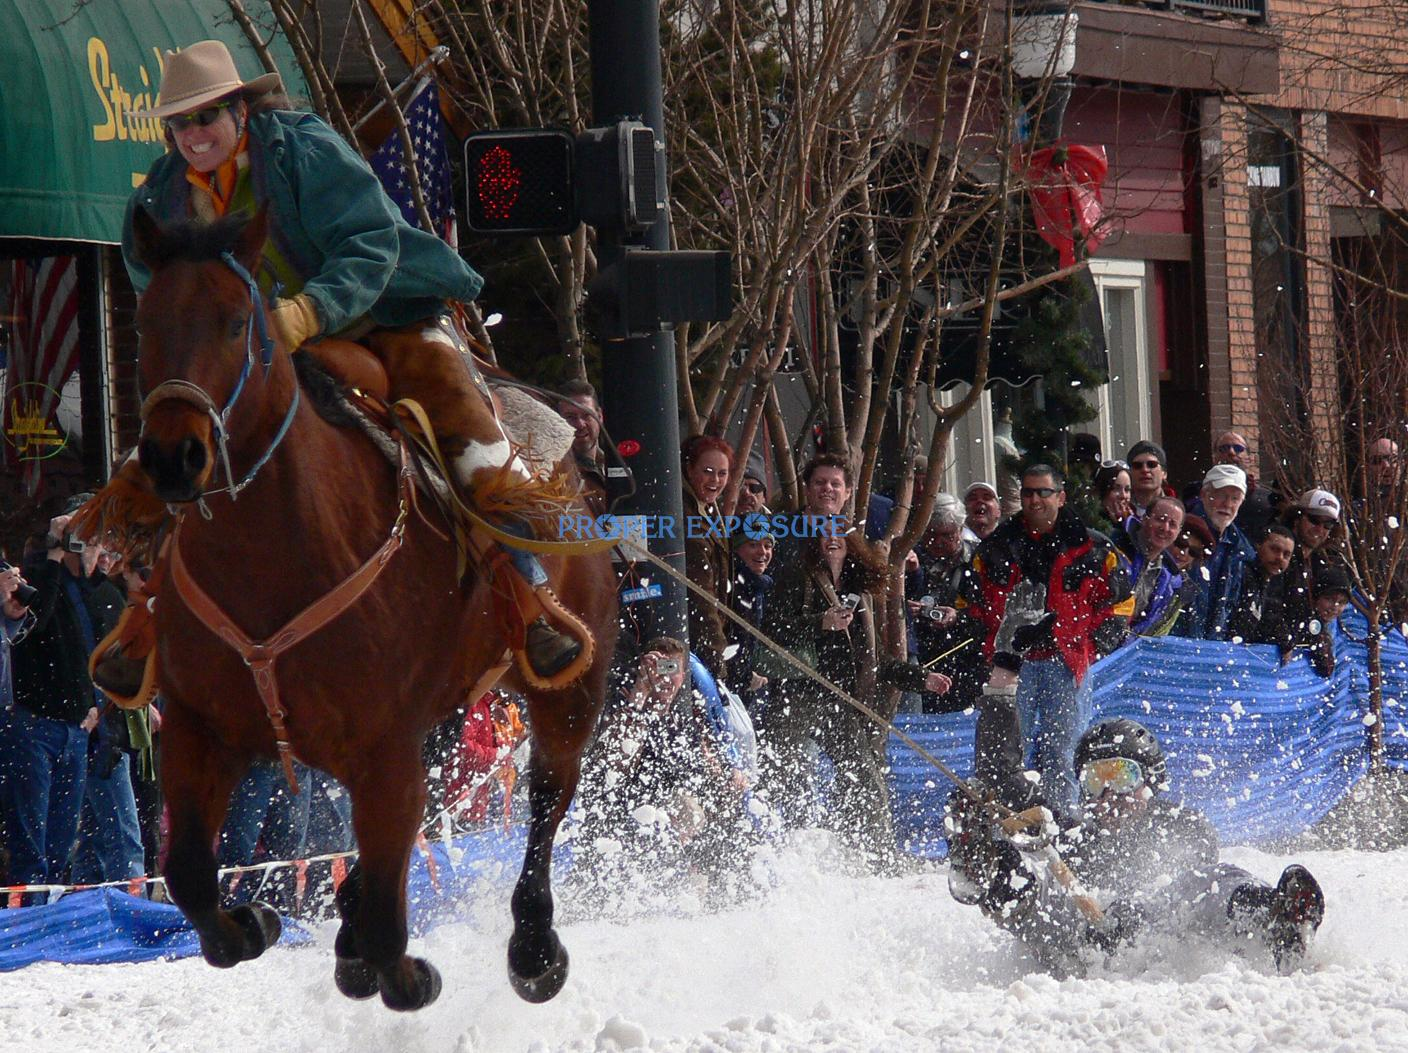 Horse, horse rider, shovel, race, Winter Carnival, street event, cowboy, downtown, Steamboat Springs, Colorado